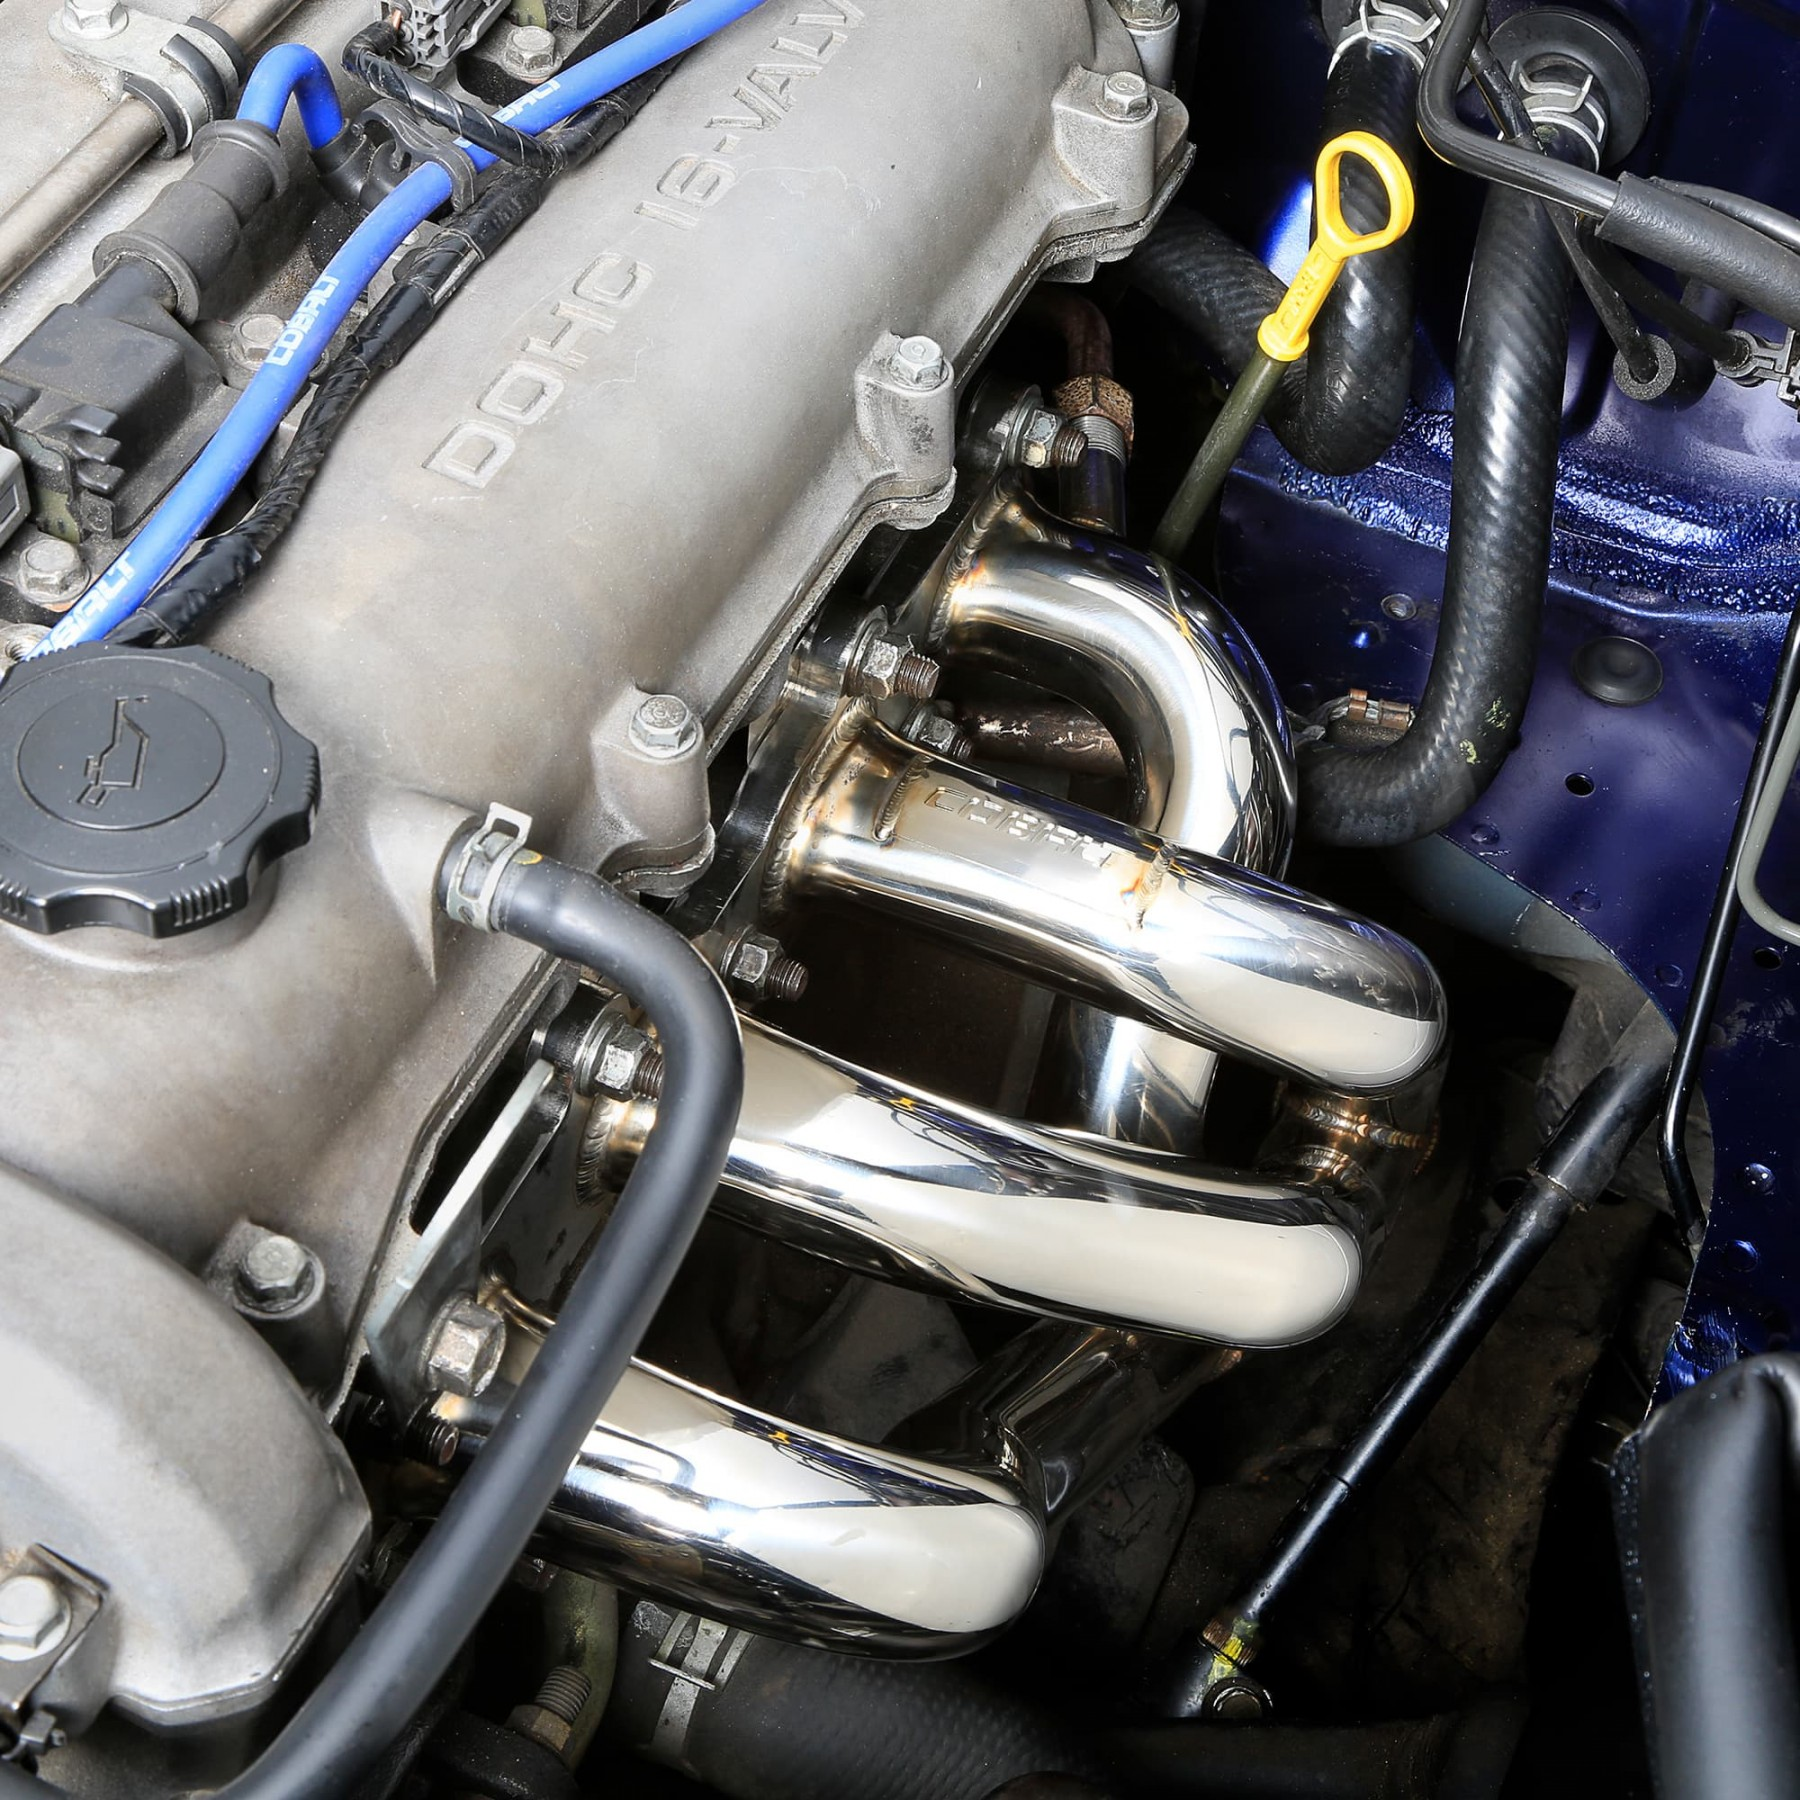 910 645 Performance Stainless Steel Header By Cobalt Mossmiata 99 Miata Fuel Filter Location On View Larger